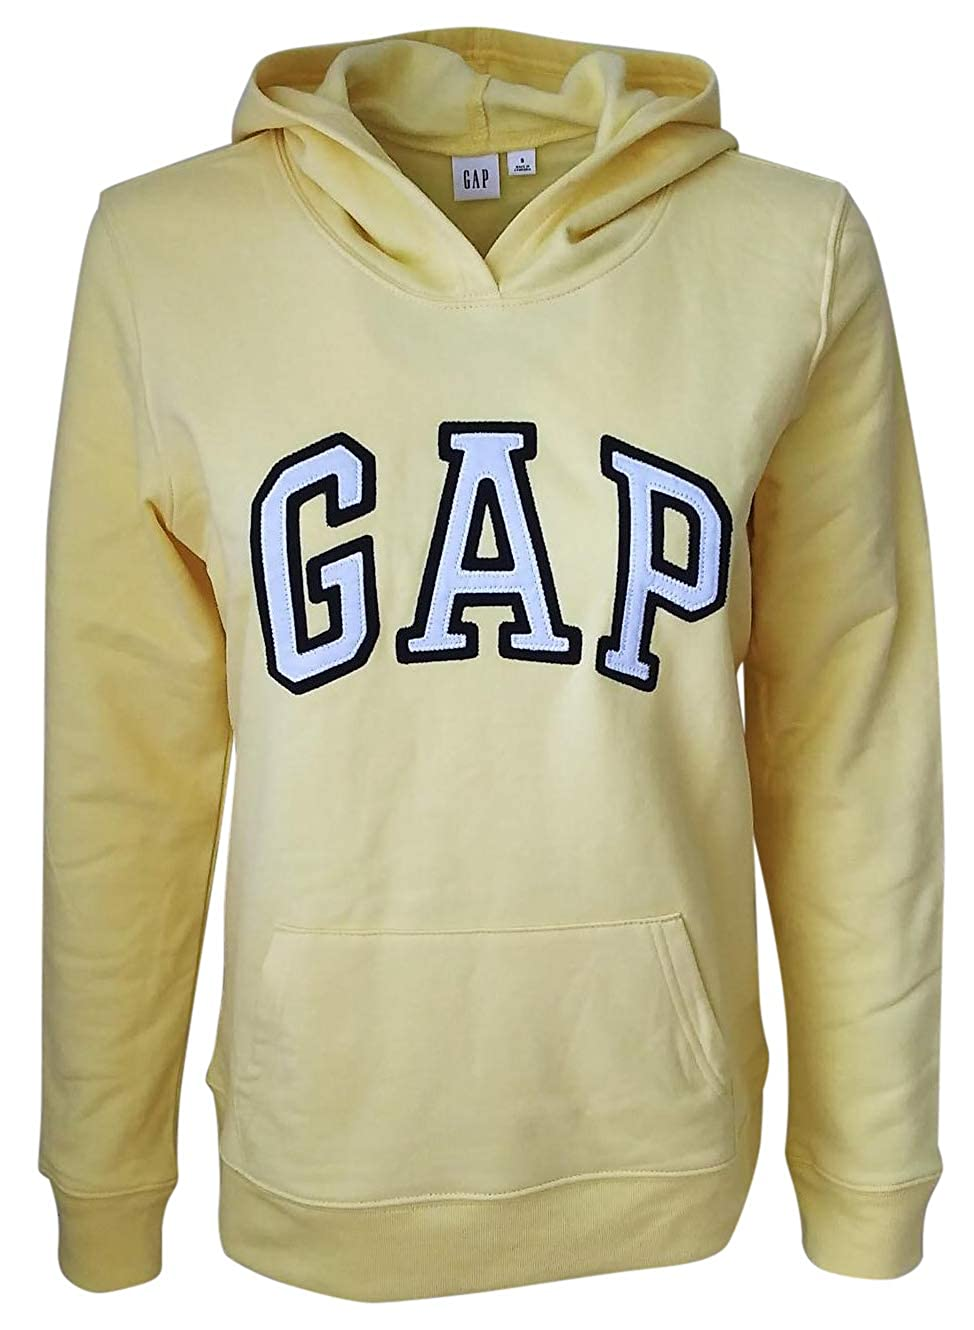 cdad083dd GAP Womens Fleece Arch Logo Pullover Hoodie at Amazon Women's Clothing  store: